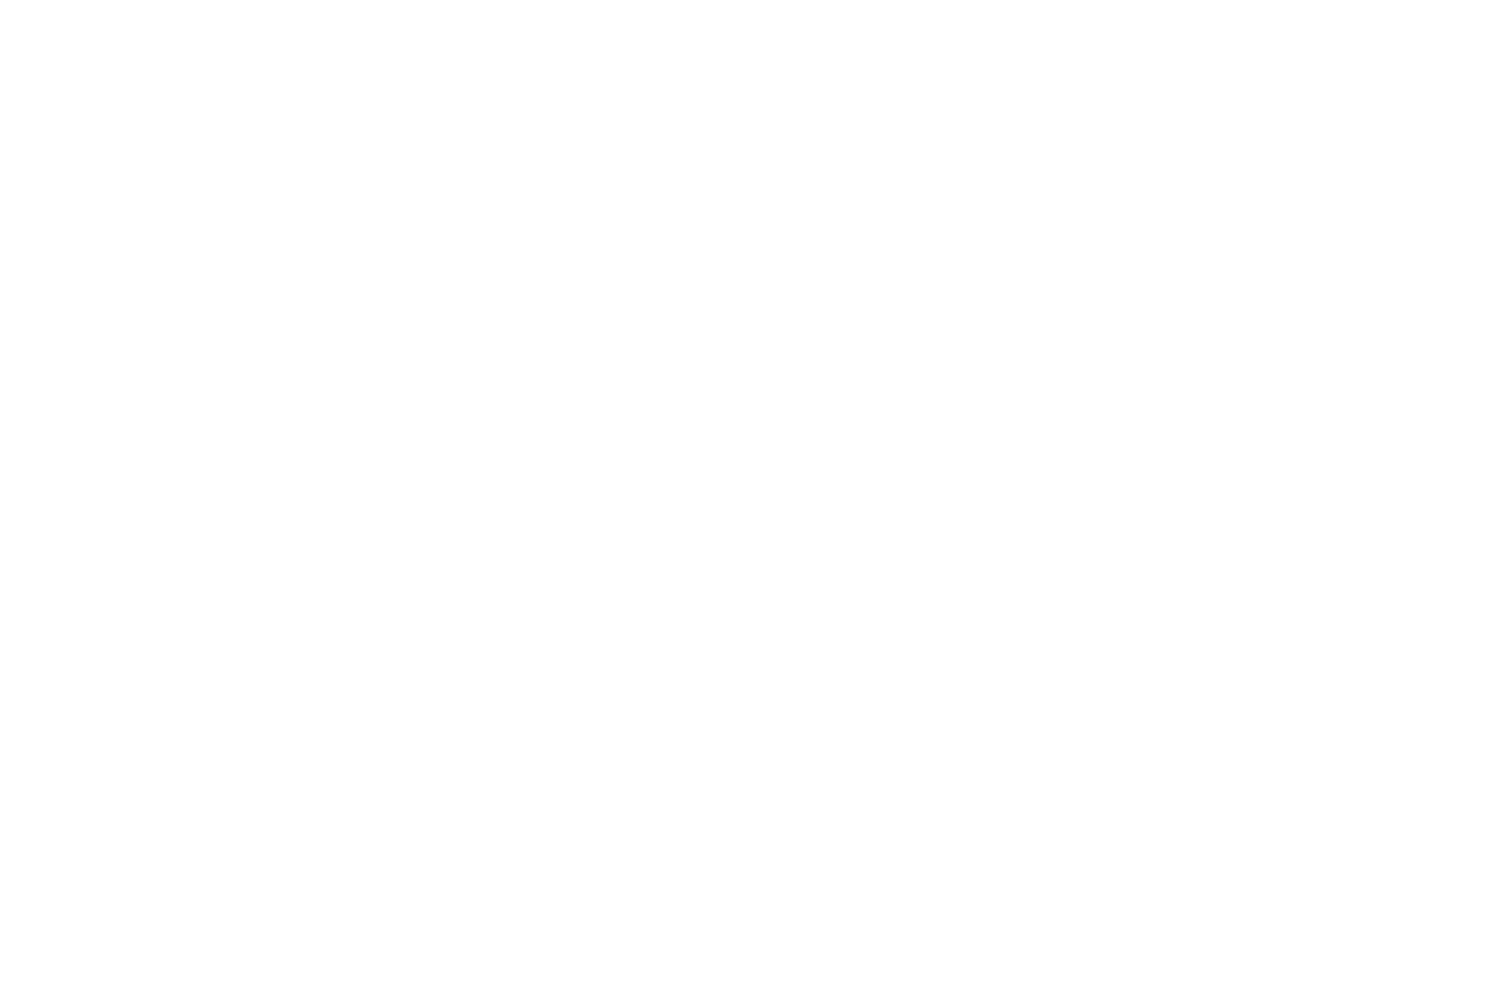 Houston Kraft